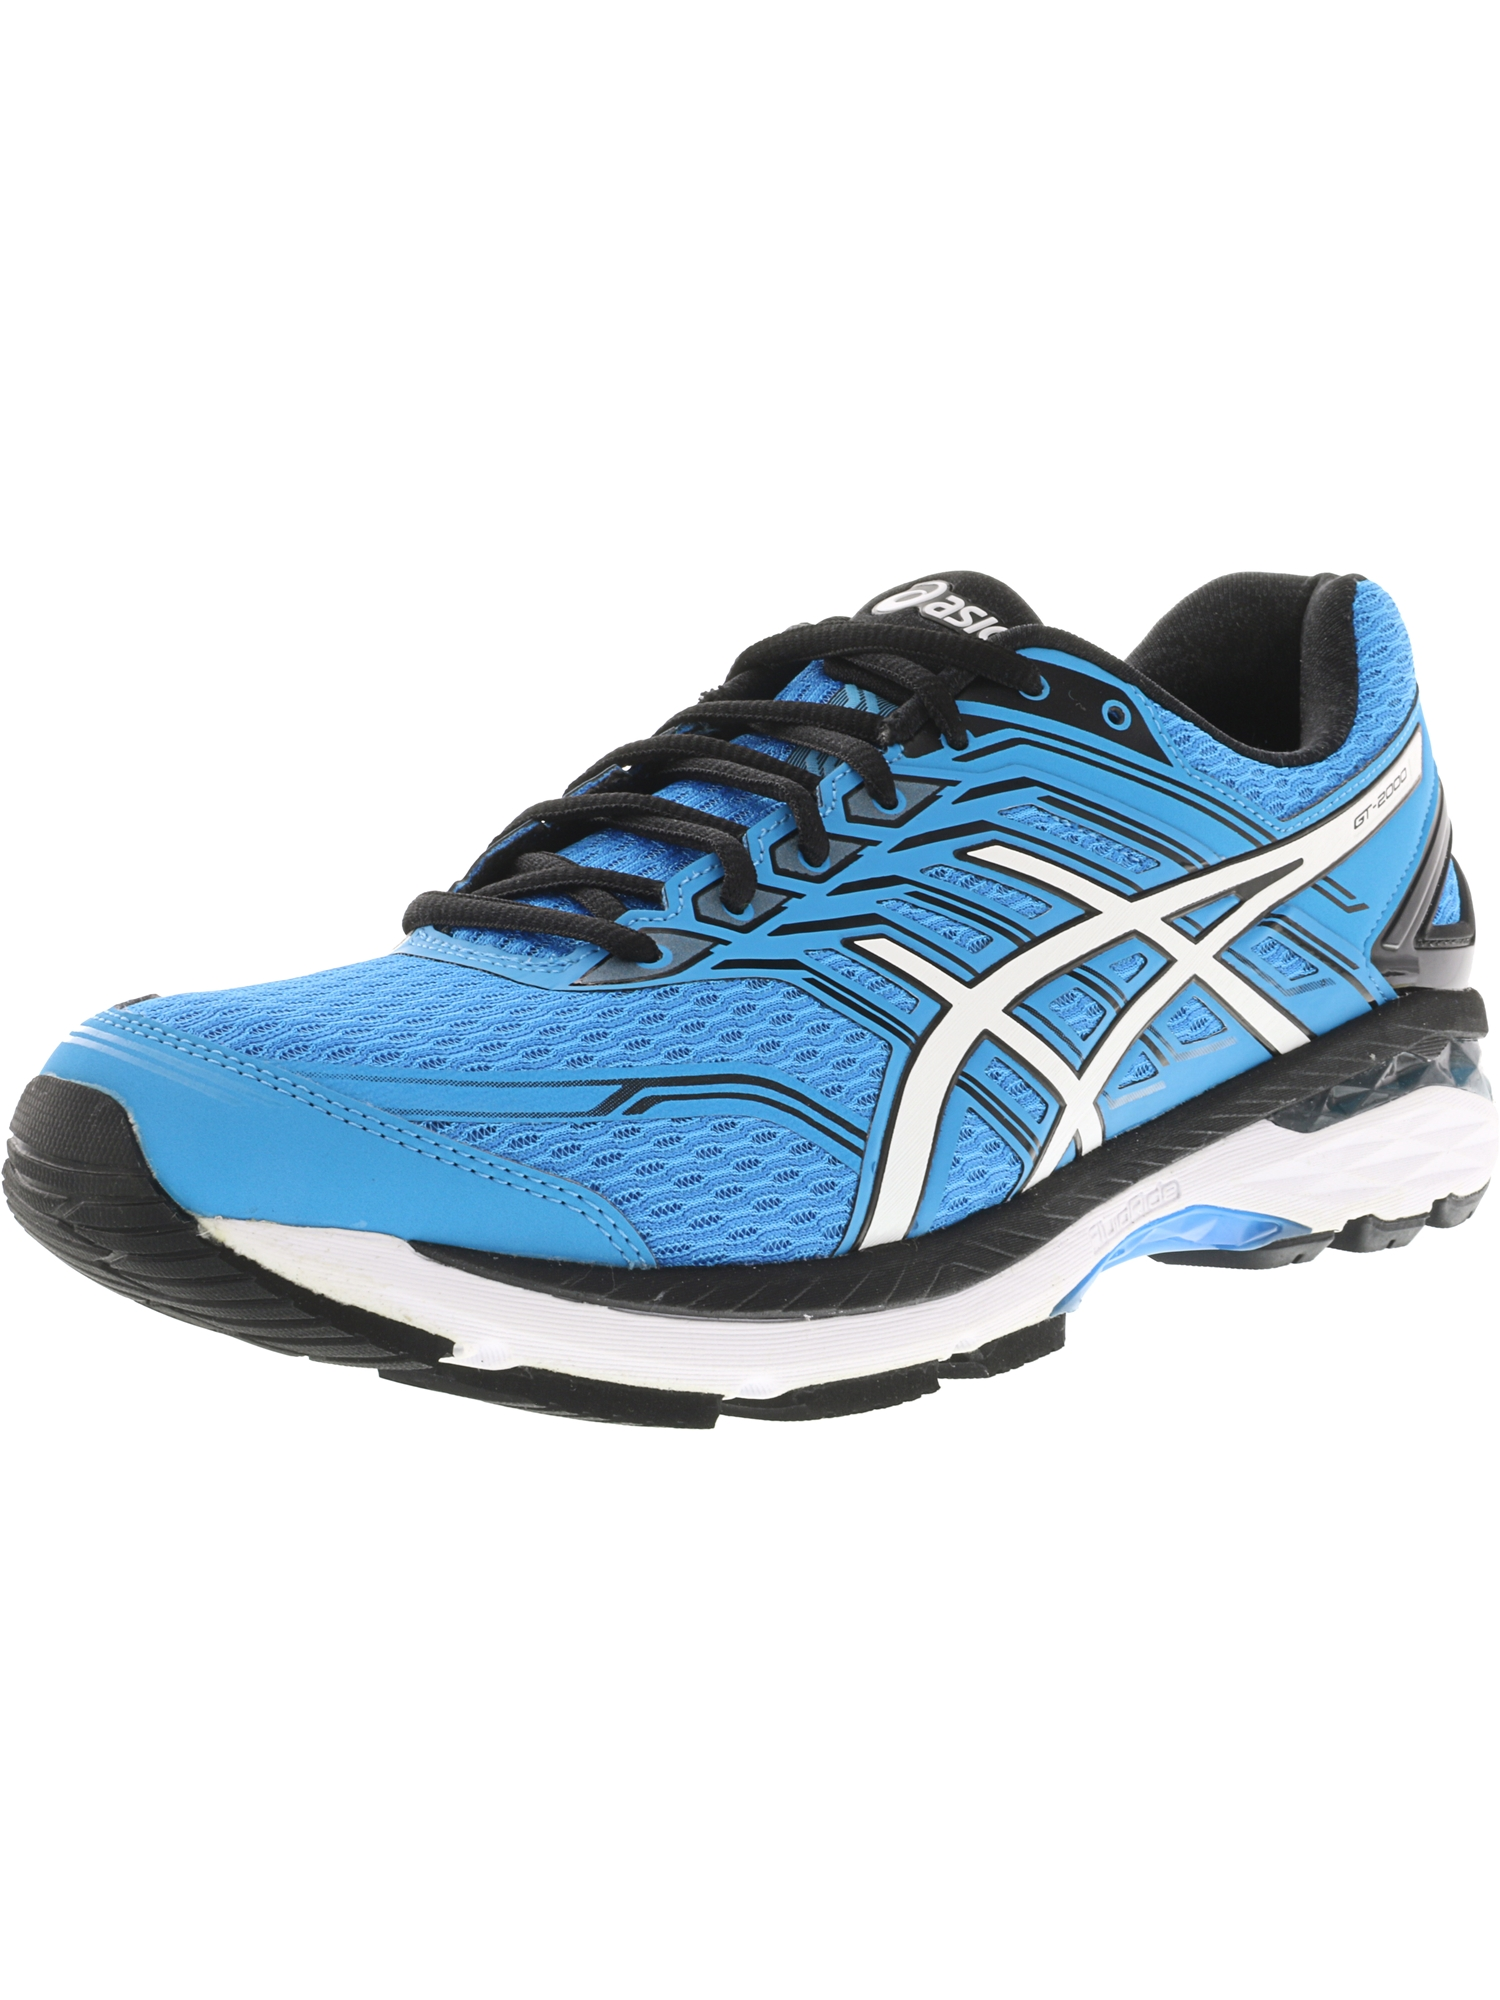 Asics Men's Gt 2000 5 Carbon Silver Island Blue Ankle High Running Shoe 8W